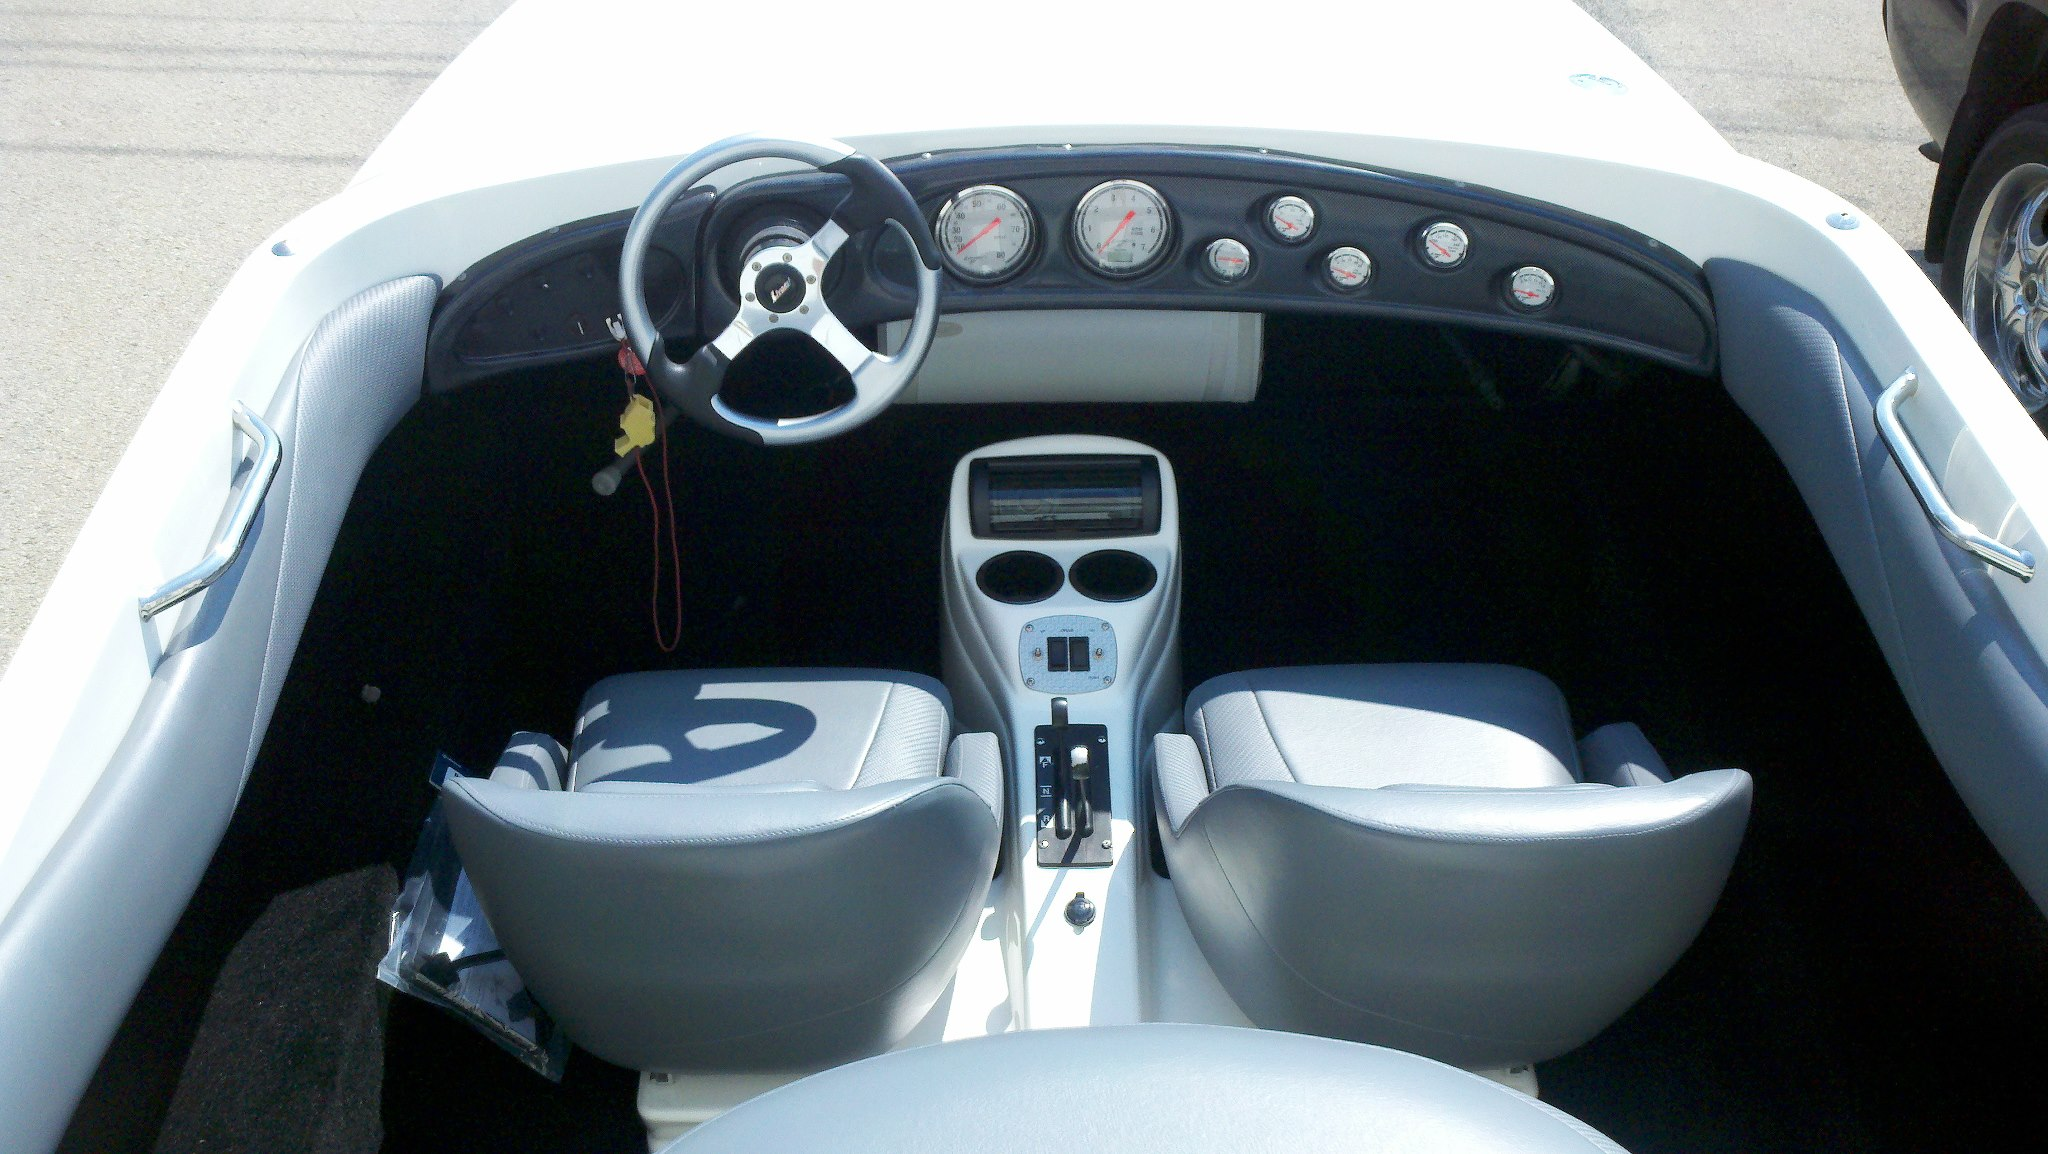 Custom Marine Interiors, Upholstery, and Carpeting: Rear View of completed Wellcraft Scarab project